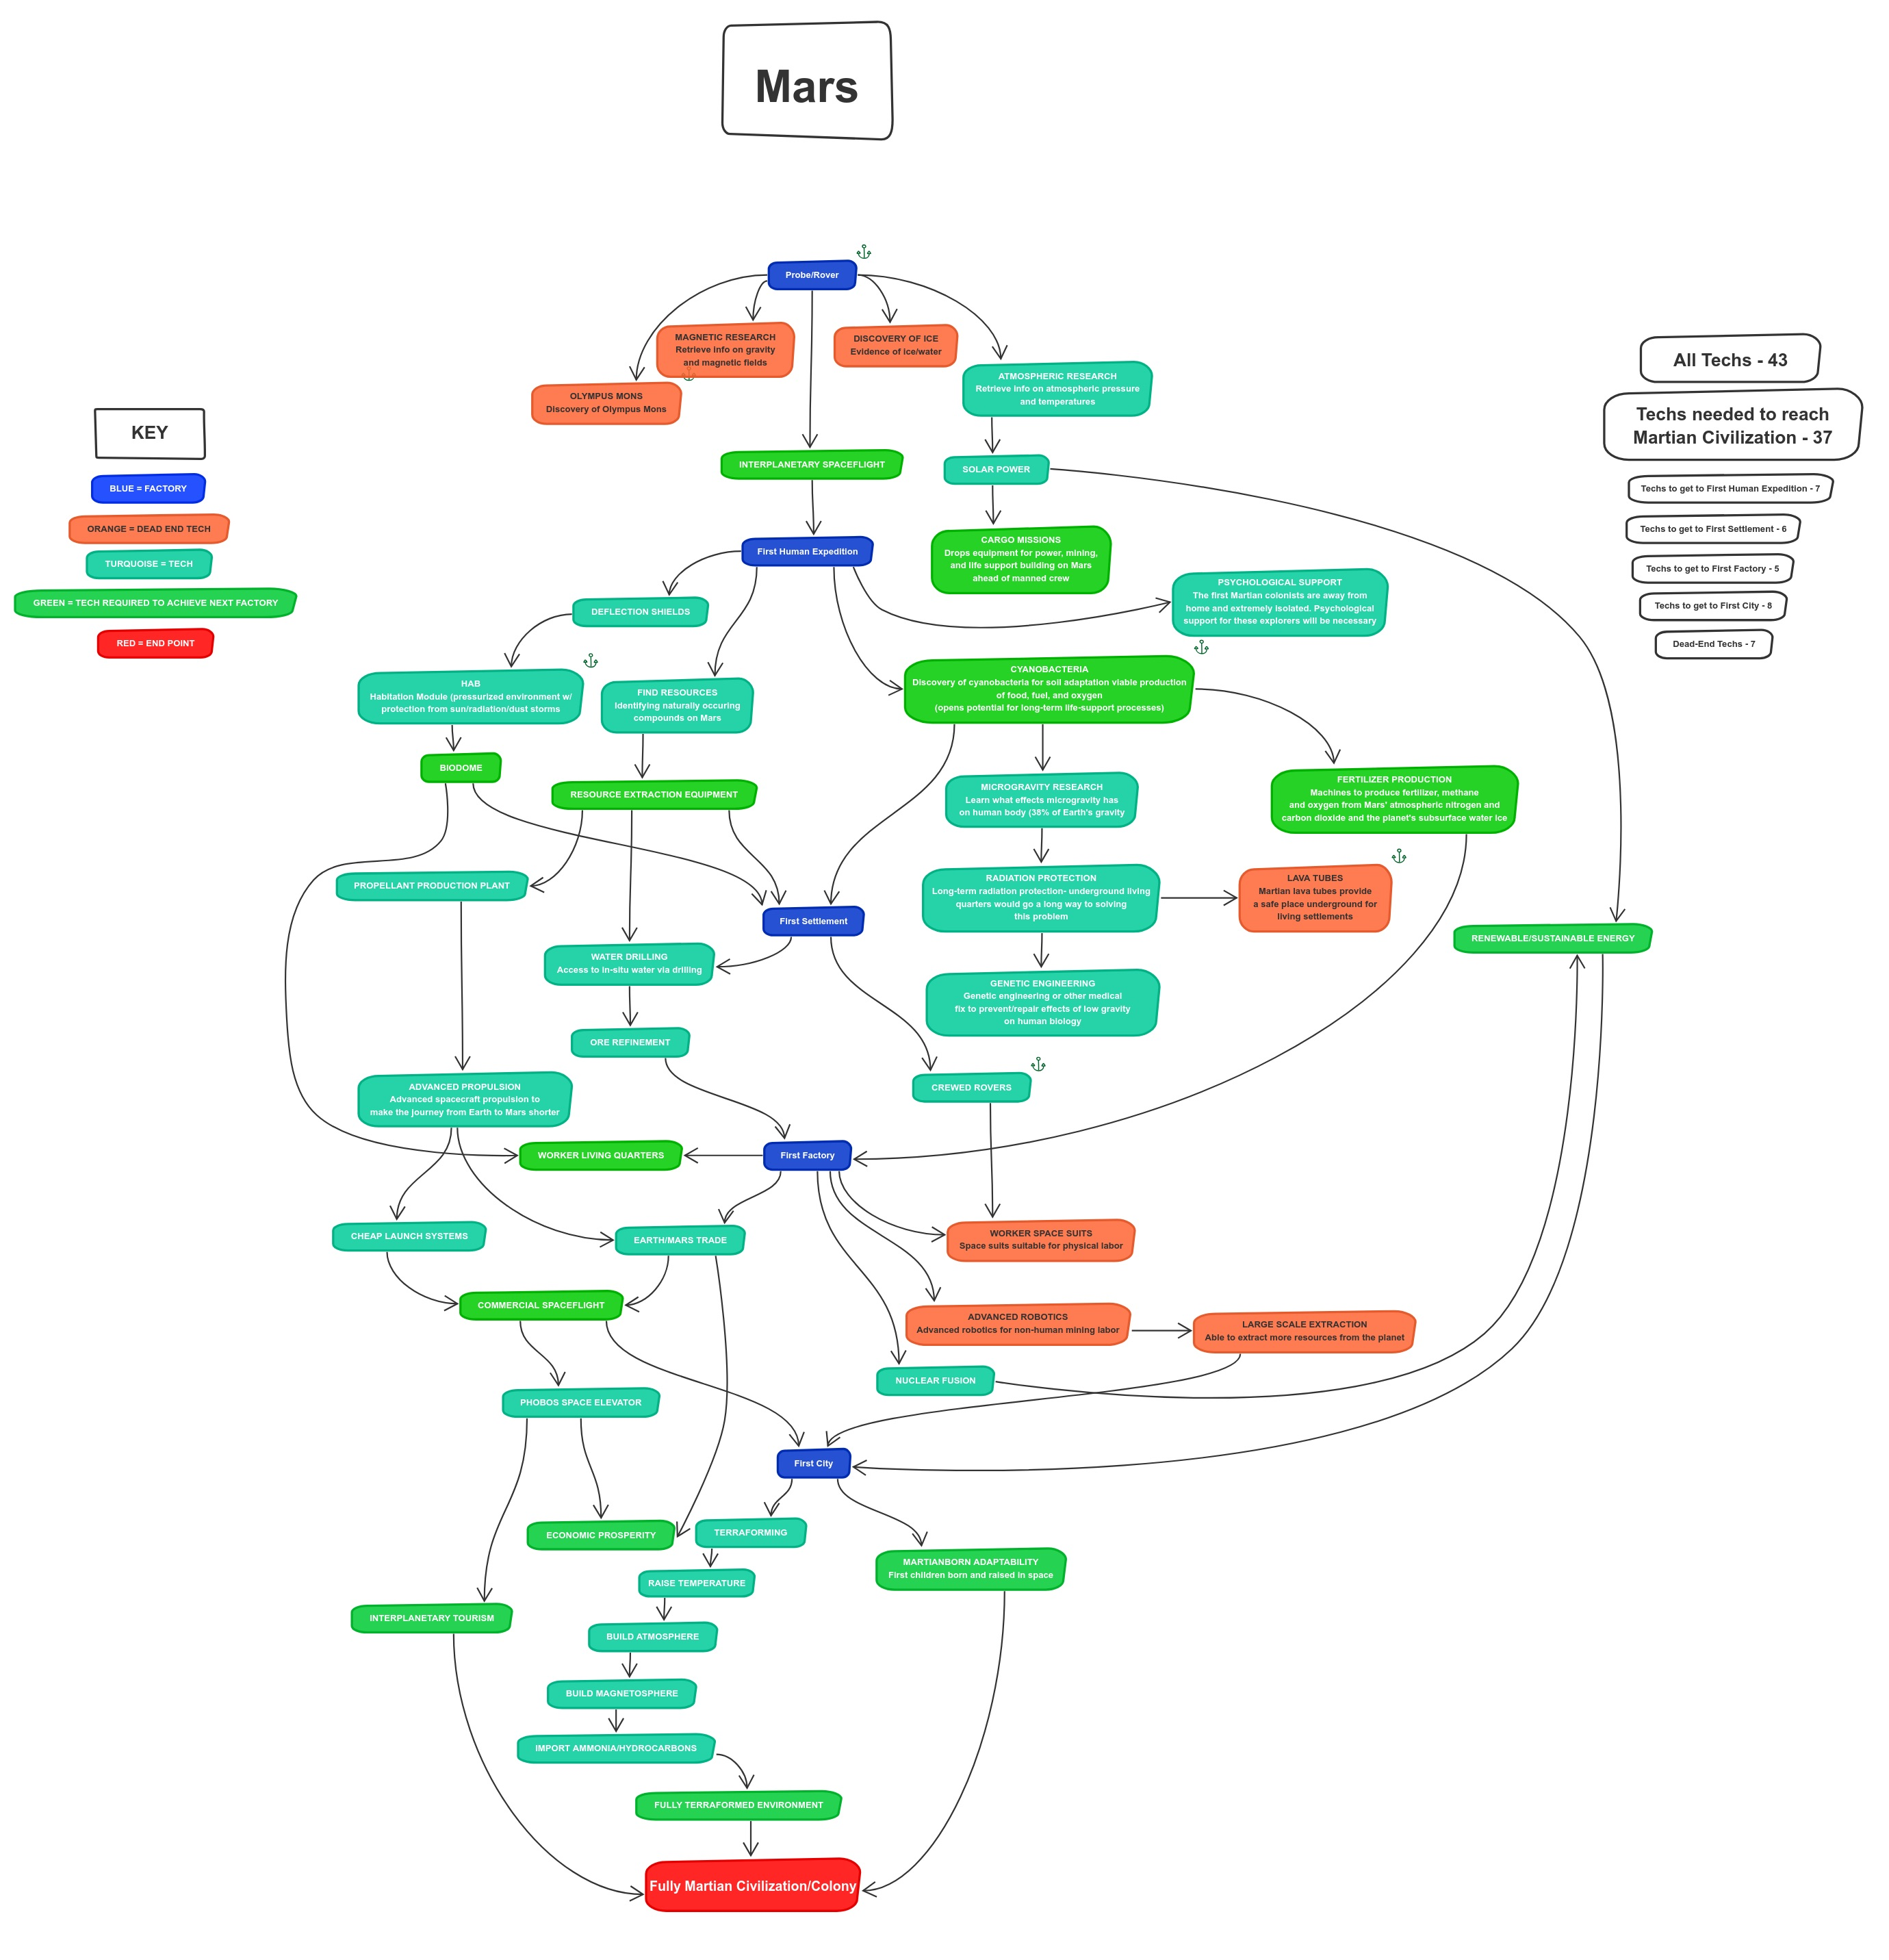 Mind map by Computer Lunch to visualize game development